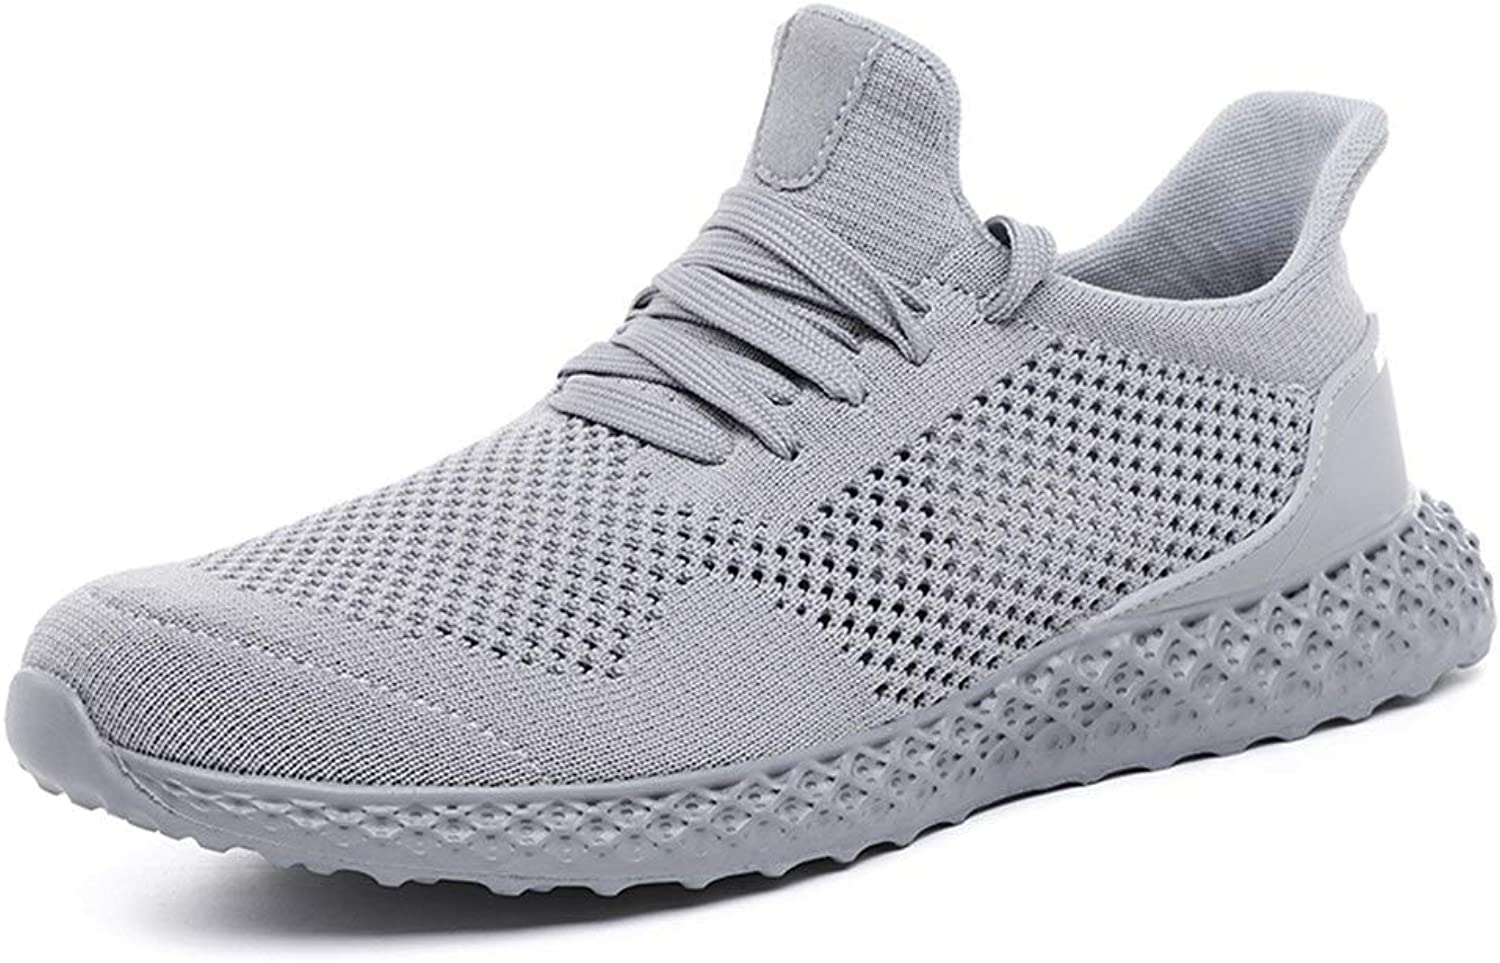 Ino Athletic shoes for Men Breathable Mesh Speed Outdoor Activities Running Sneakers Knit Lightweight Easy Soft Anti-Slip Flat Lace Up Round Toe